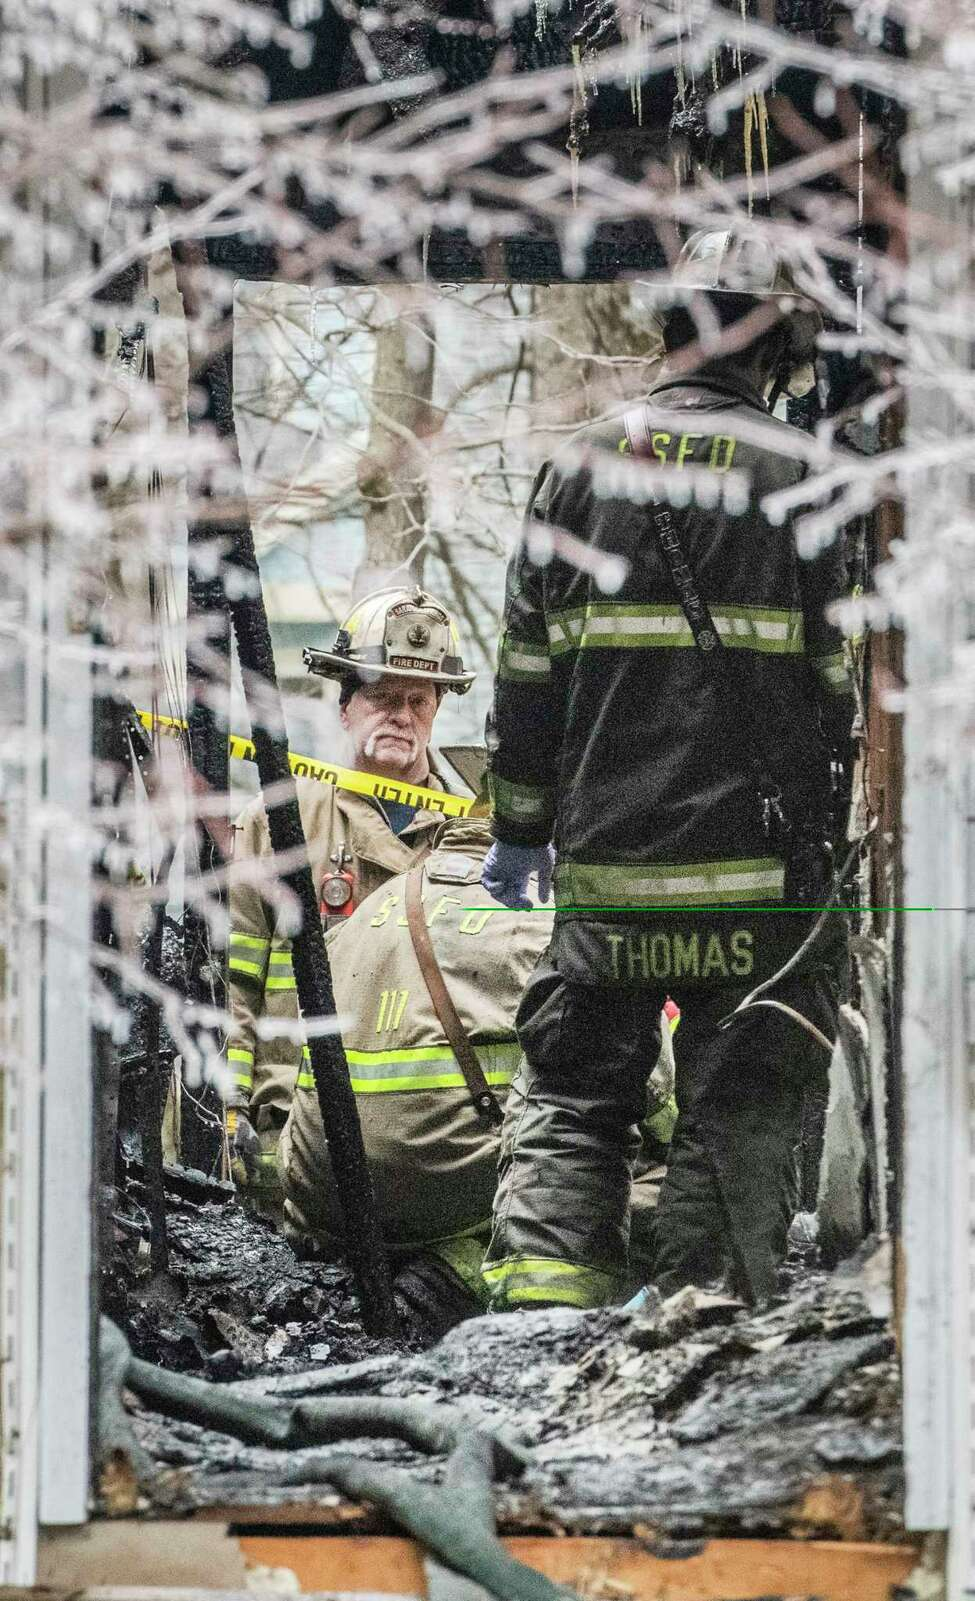 Fire investigators from State Fire try to determine the cause of a fatal fire at 23-27 Sarazen Way Wednesday Dec. 24, 2018 in Saratoga Springs, N.Y. (Skip Dickstein/Times Union)